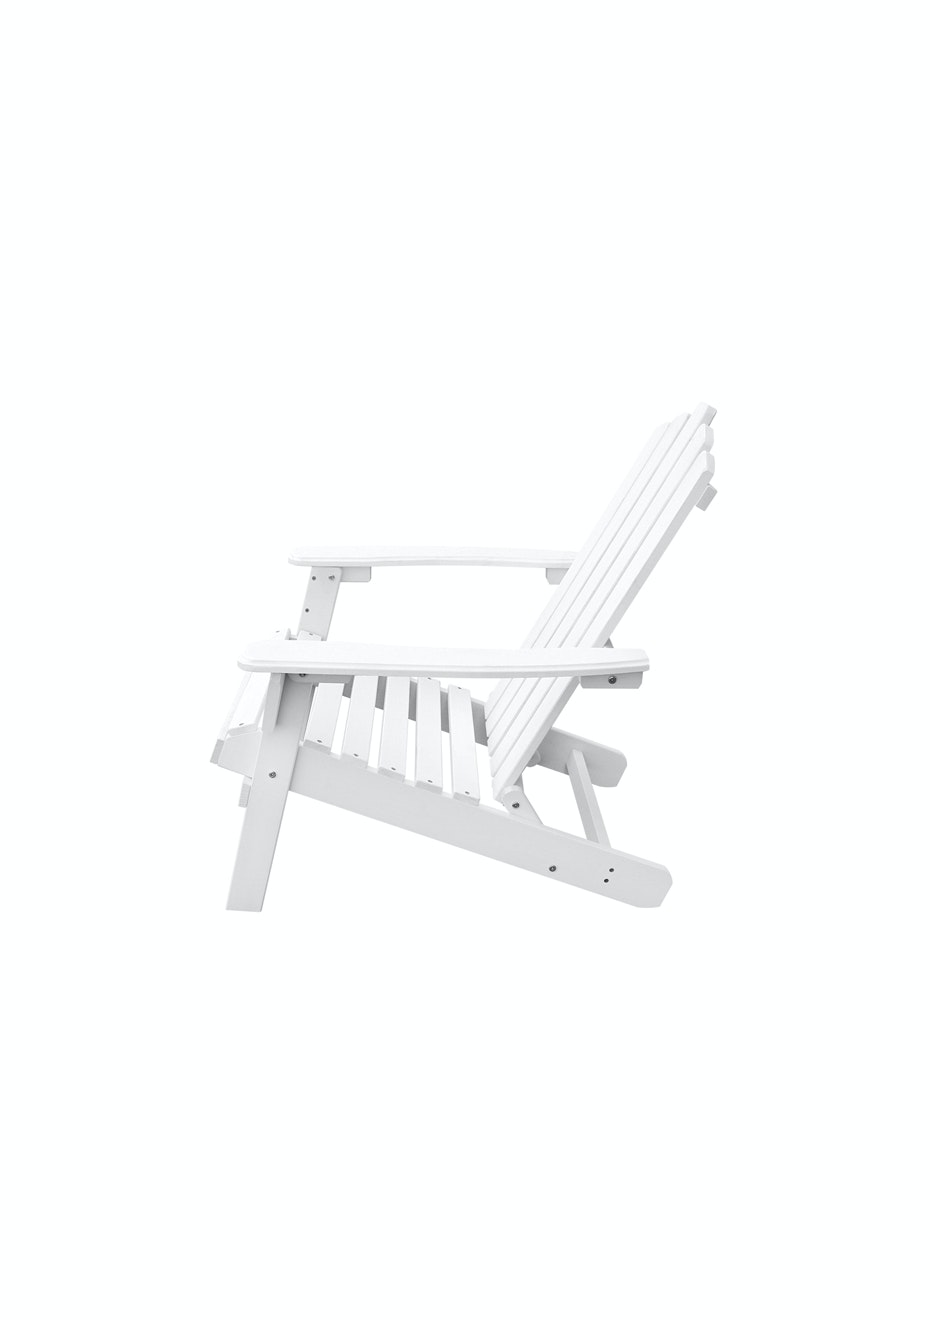 Wooden Adirondack Folding Chair Ottoman White Decorate The Deck Onceit